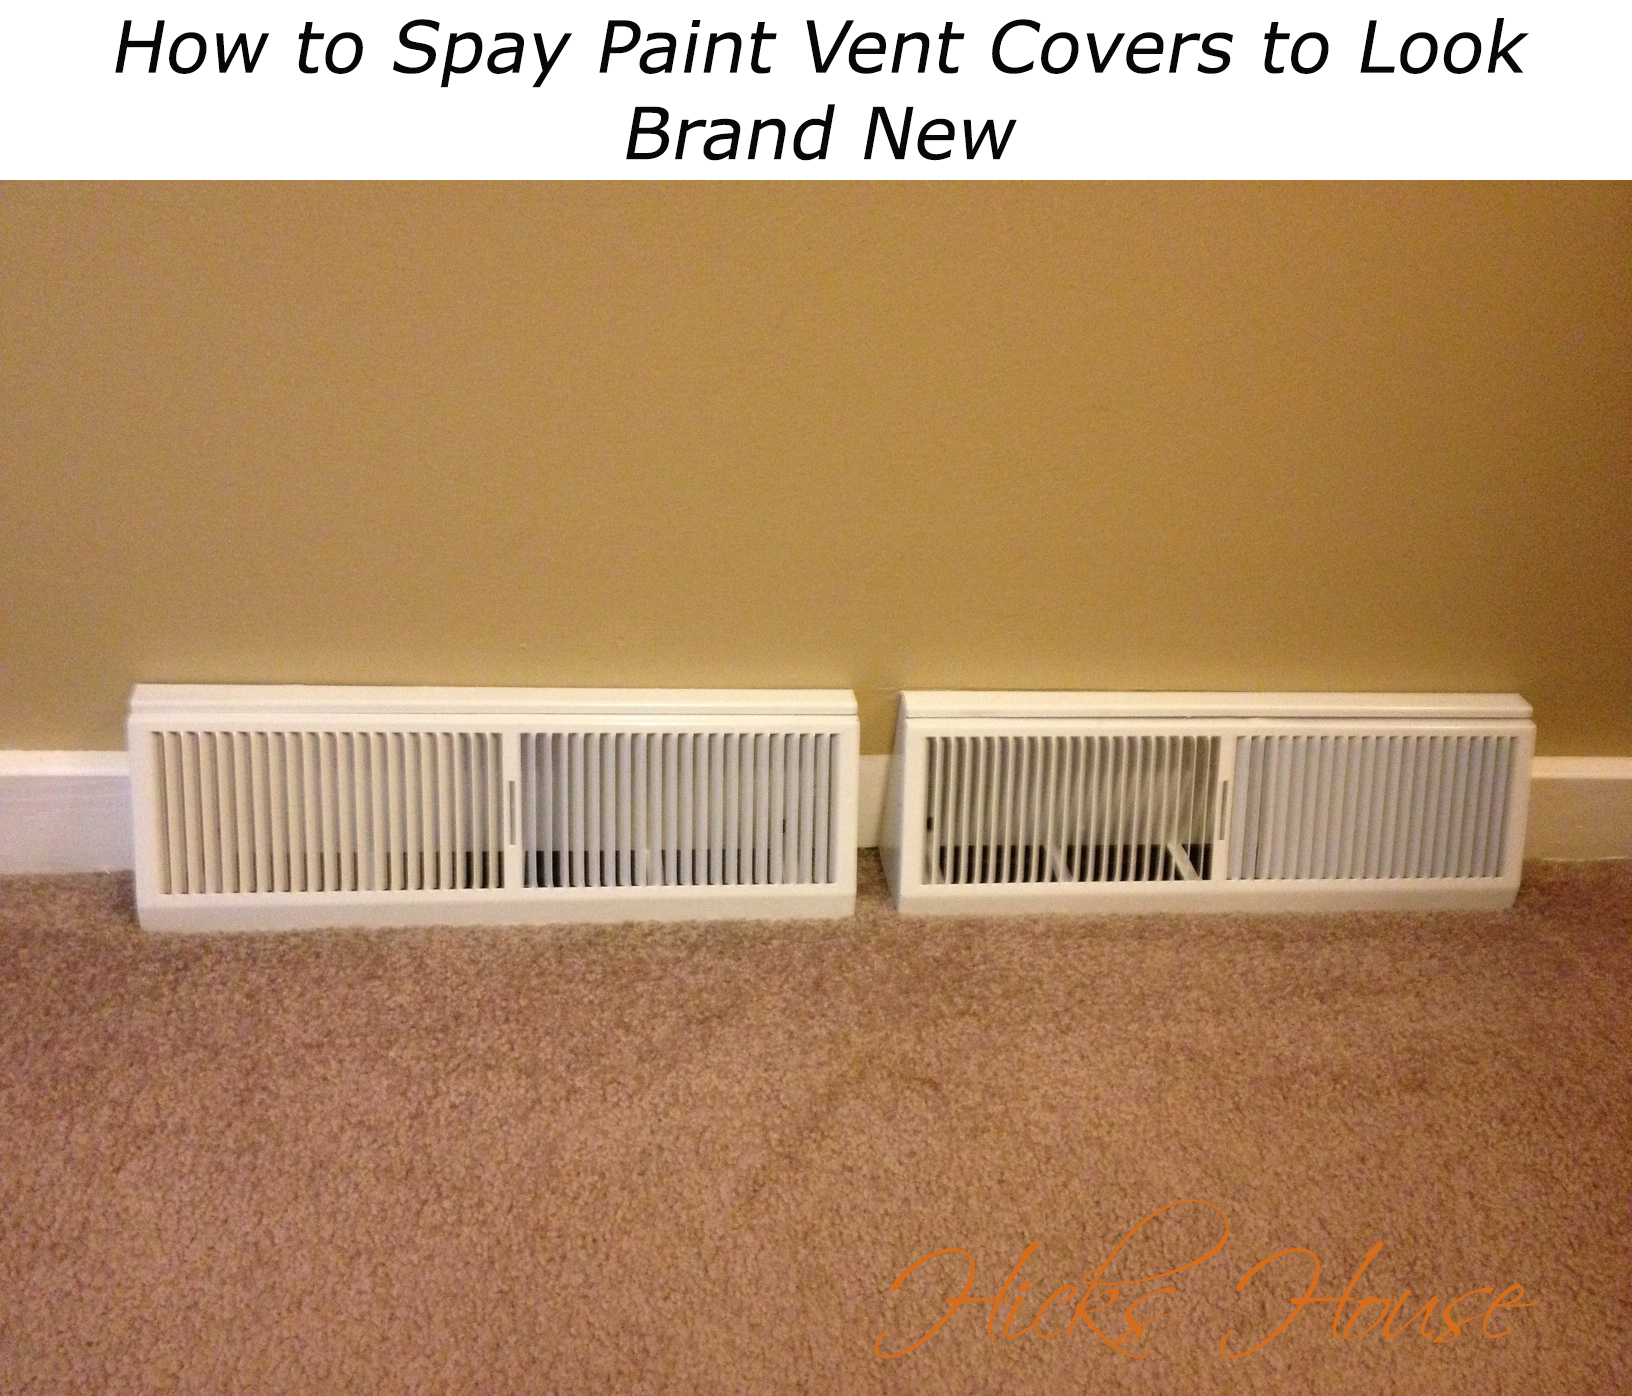 Spray Painting Vent Covers